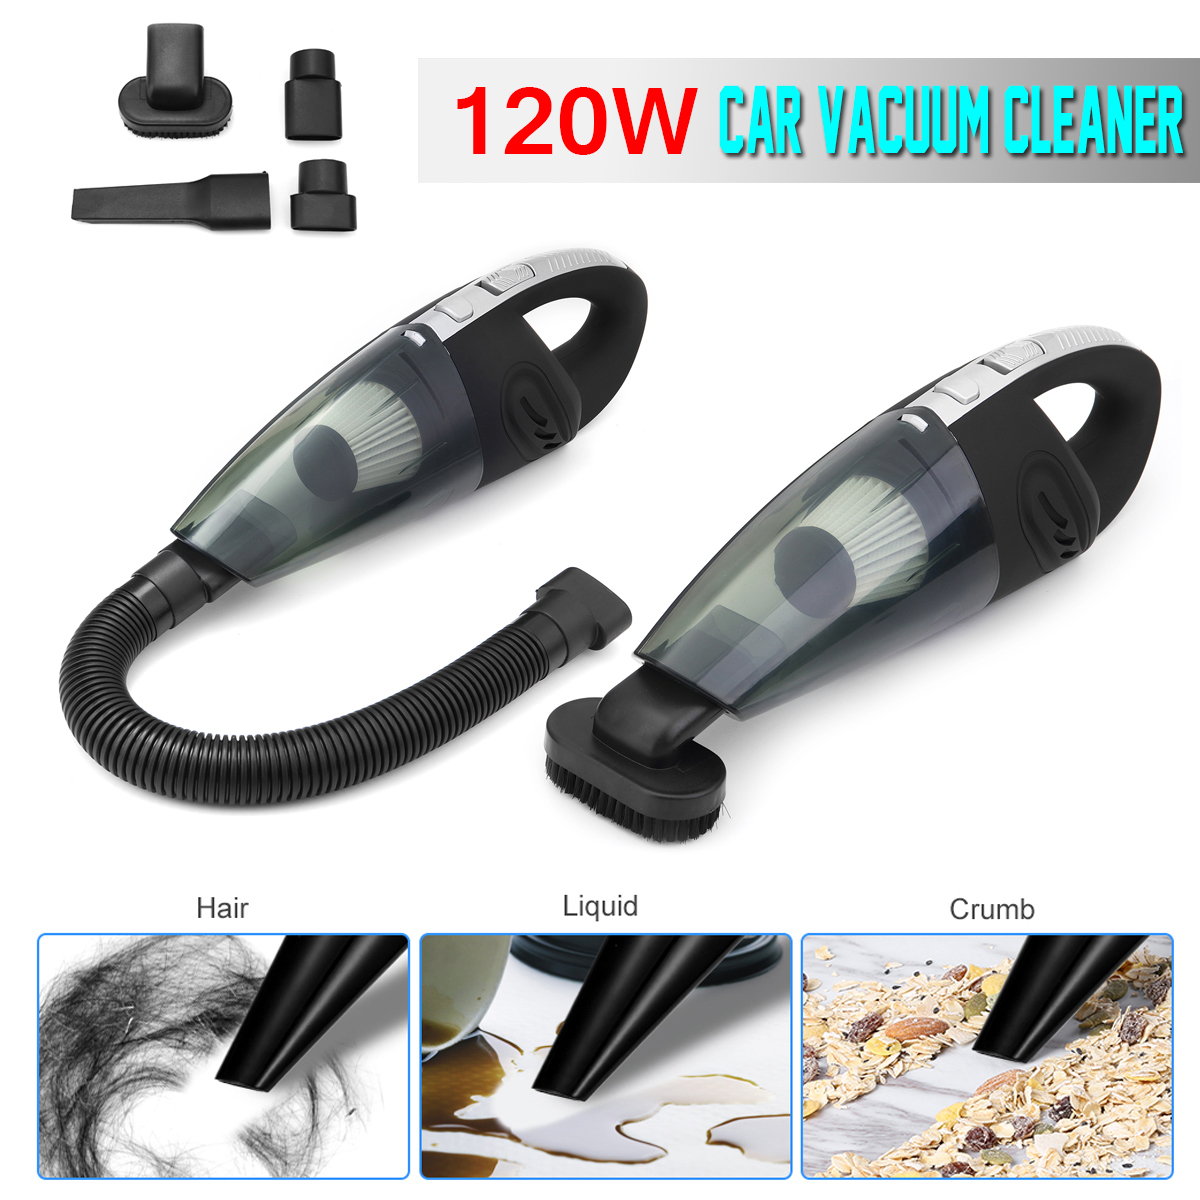 120W Handheld Car Home Cordless Rechargeable Dust Vacuum Cleaner Dry Wet Use With Different Nozzles Detachable Double Filtration120W Handheld Car Home Cordless Rechargeable Dust Vacuum Cleaner Dry Wet Use With Different Nozzles Detachable Double Filtration